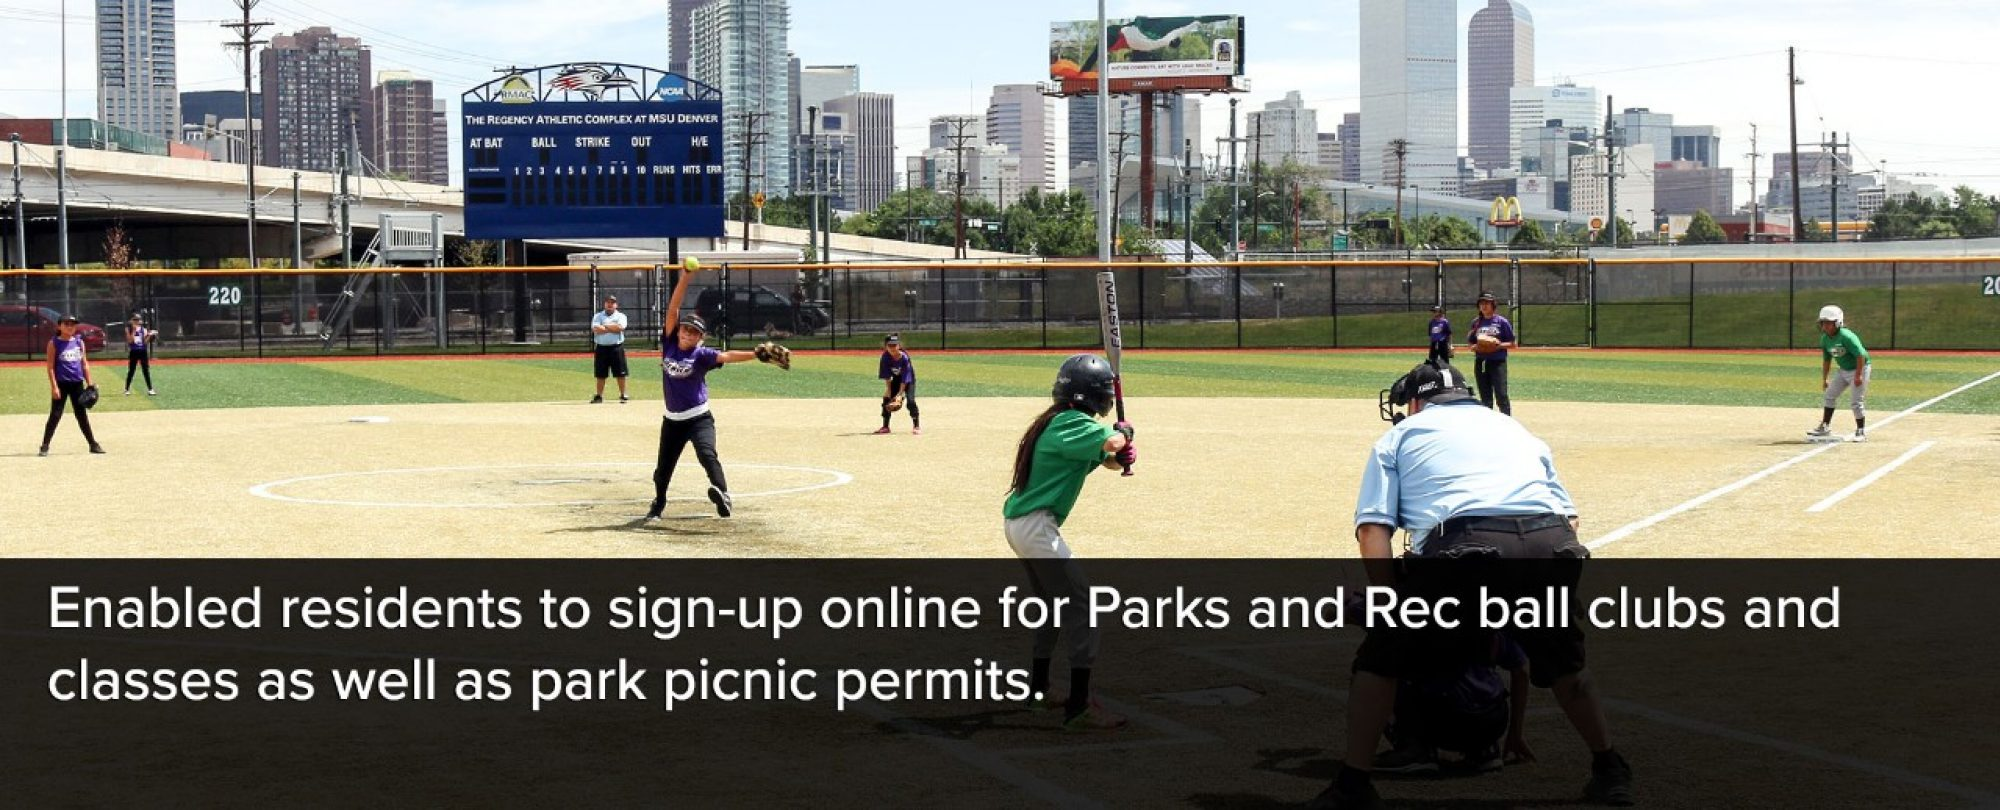 Photo of a local Denver Parks and Recreation ball park baseball game. Denver enabled residents to sign-up online for Parks and Rec ball clubs and classes as well as park picnic permits.